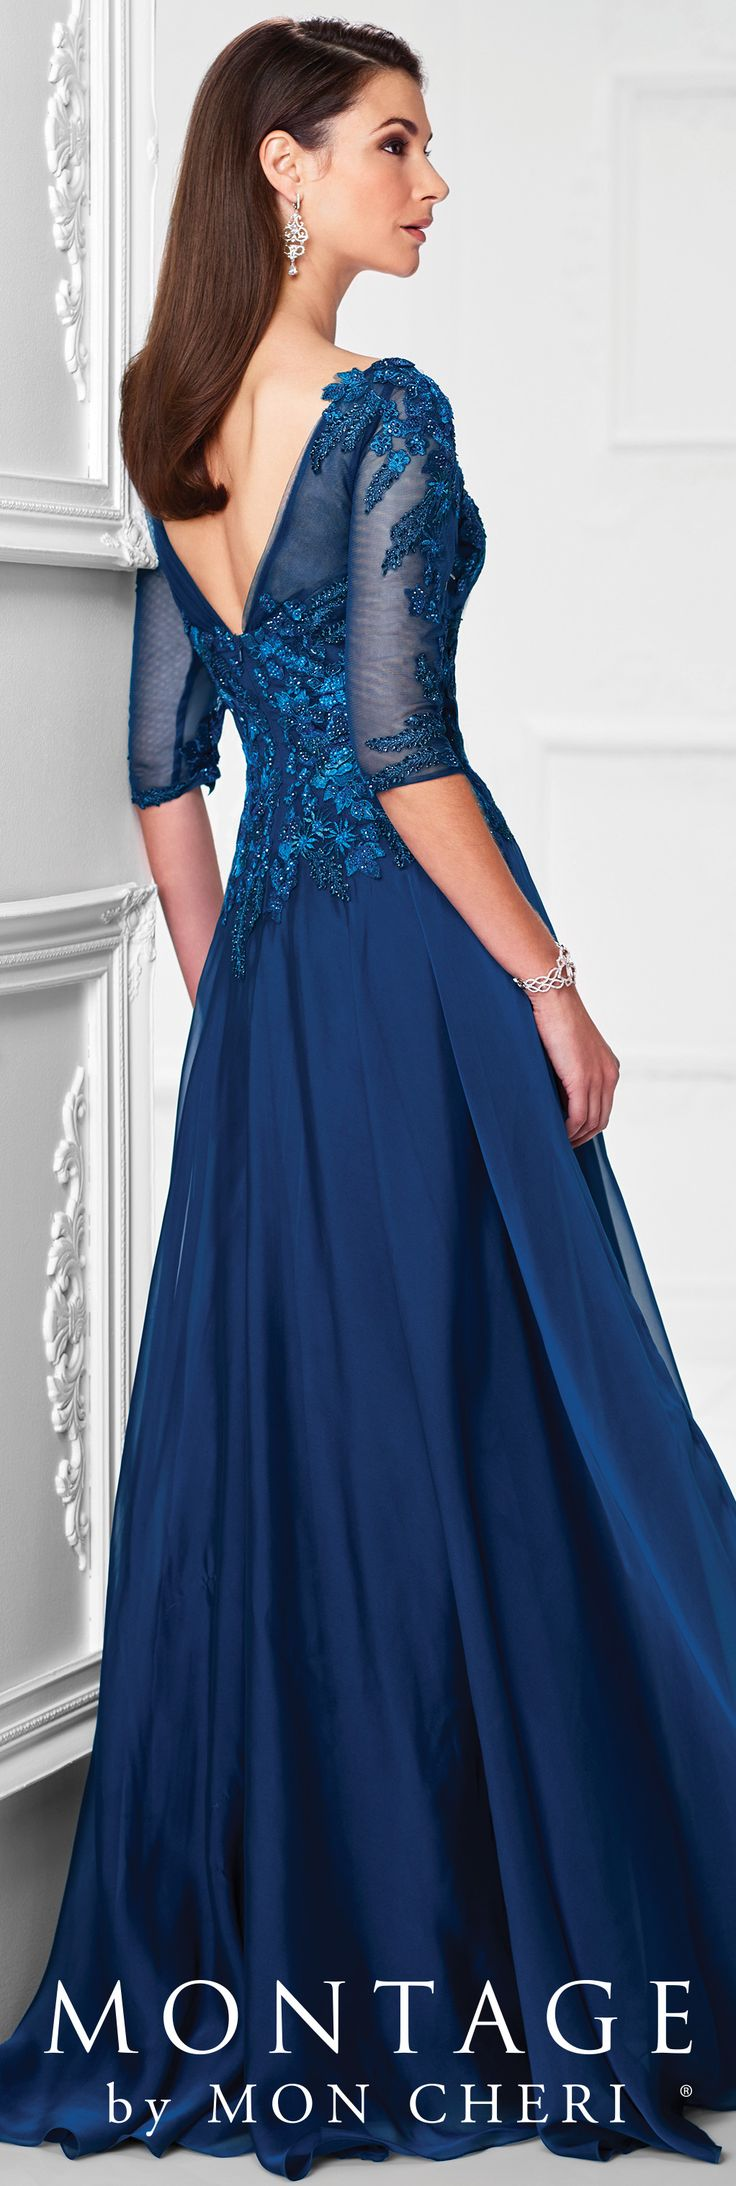 best mother of the bride dresses images on pinterest